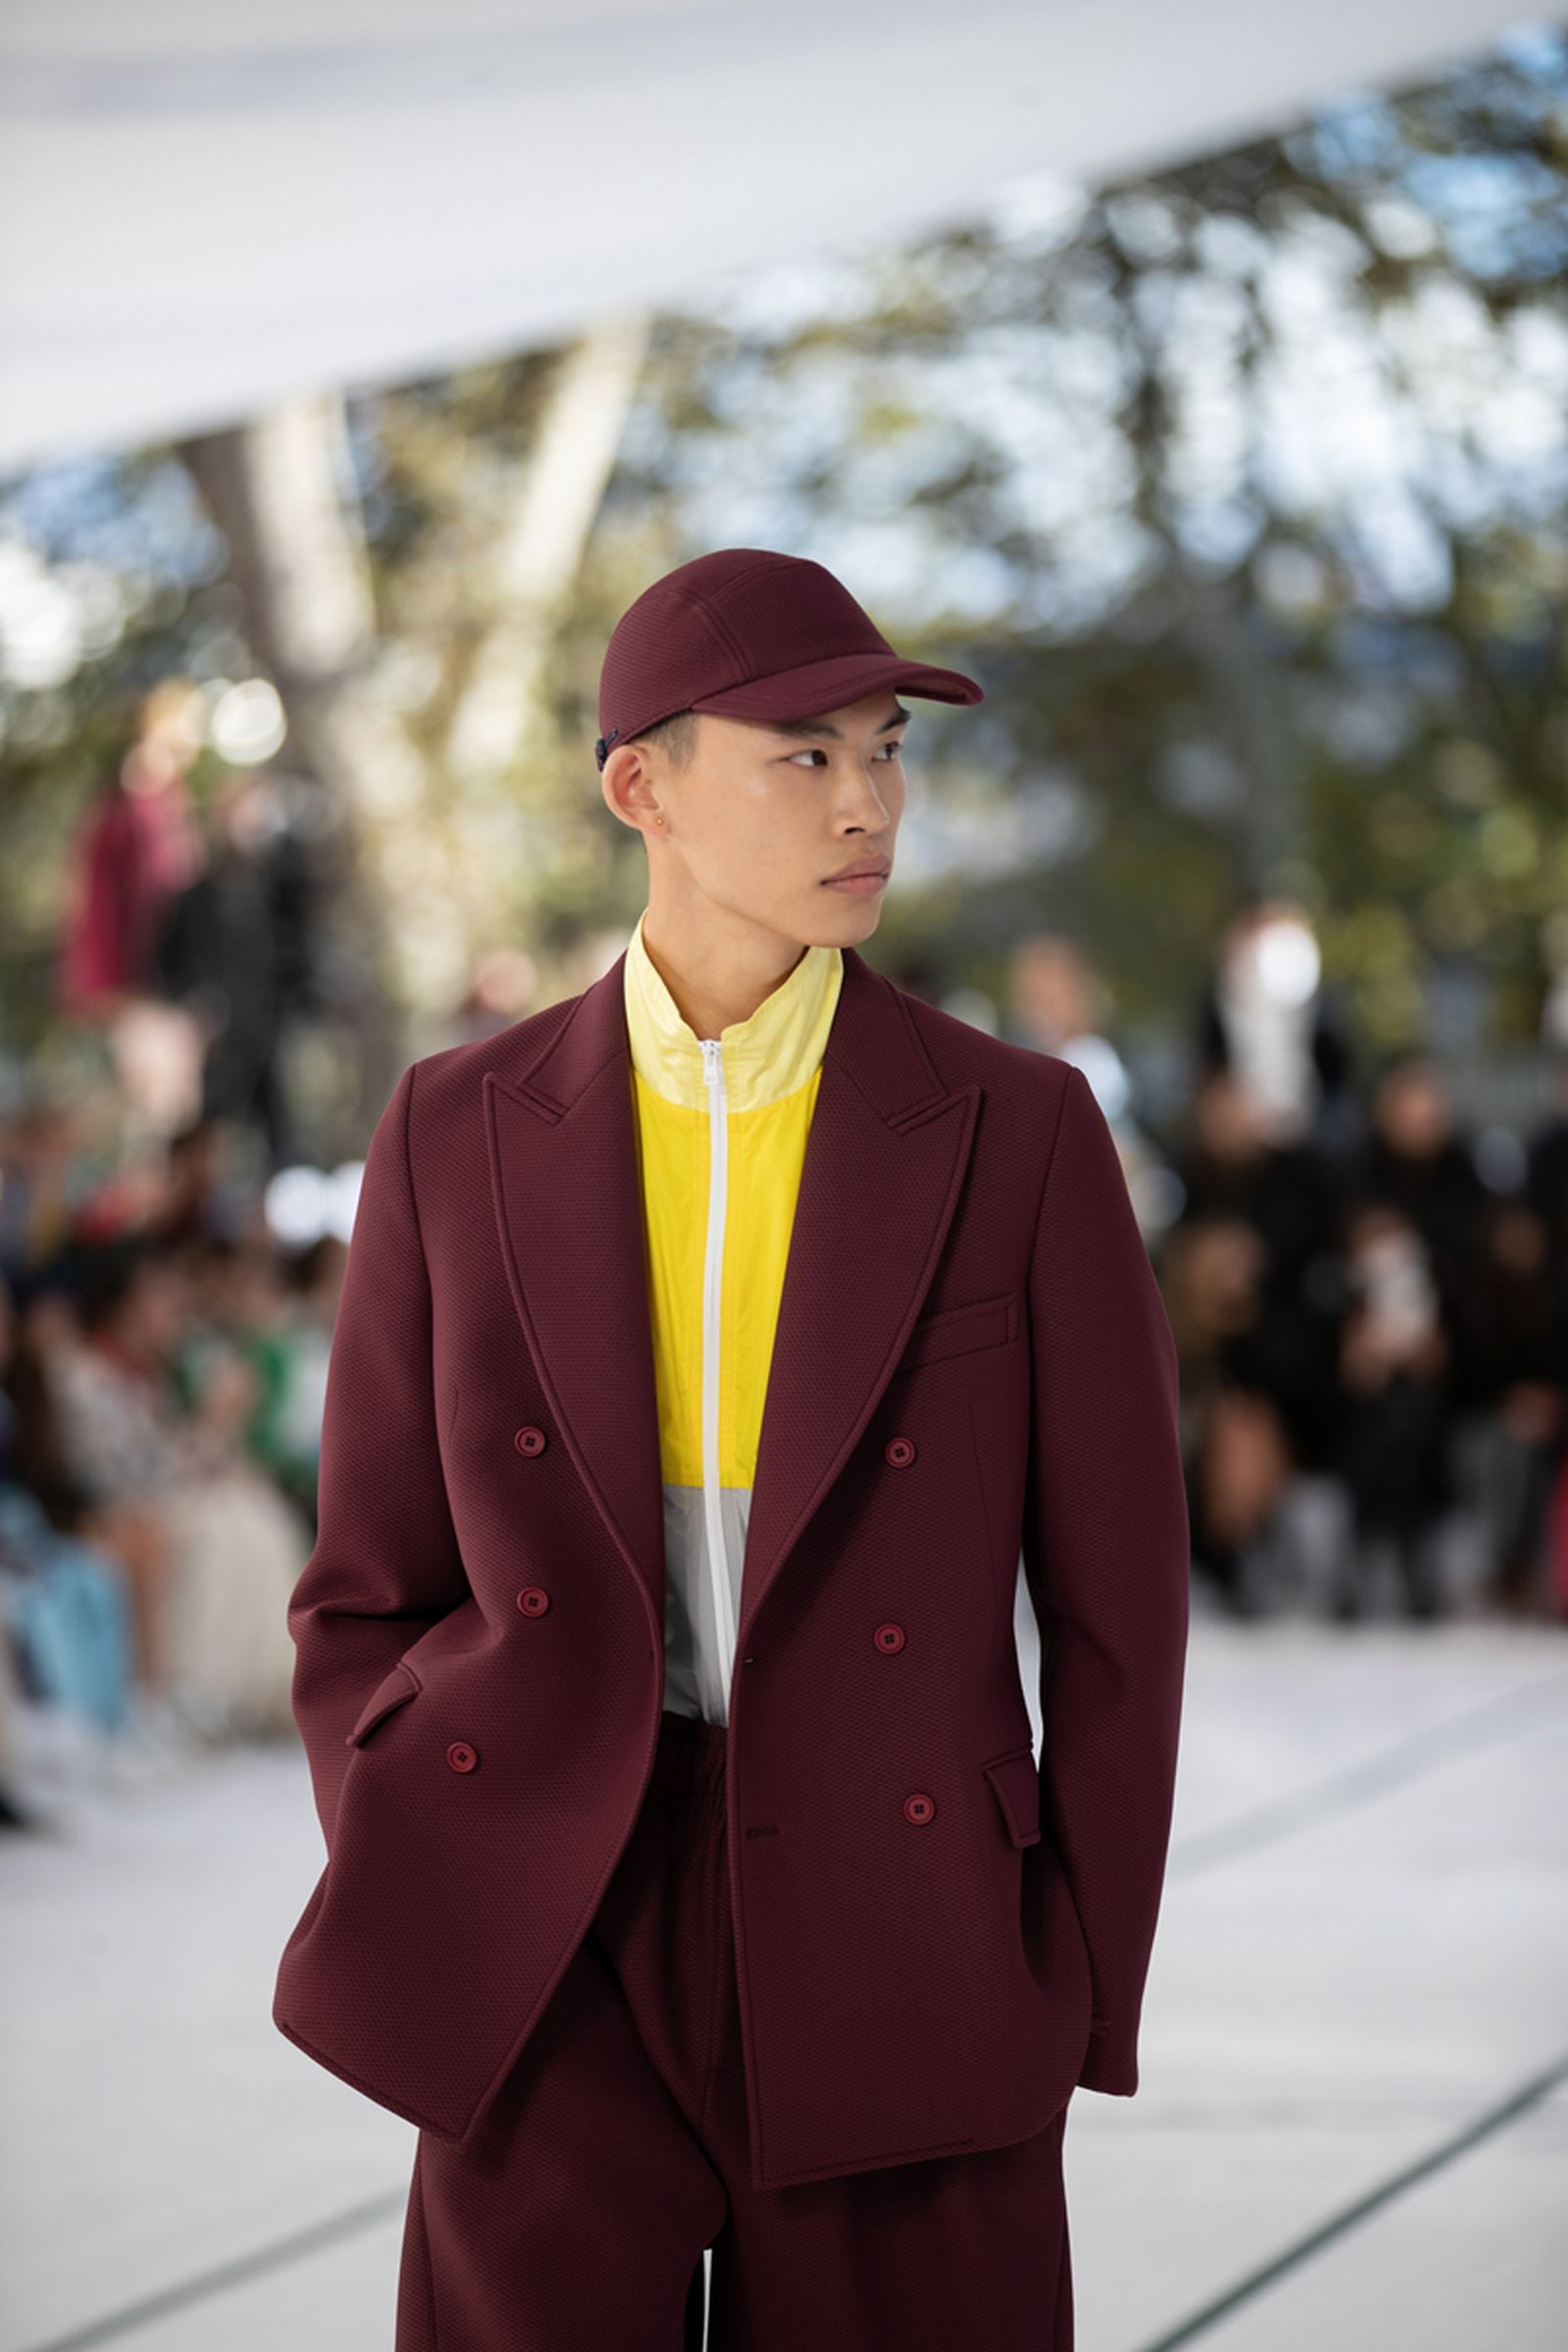 lacoste-spring-summer-2022-collection (10)